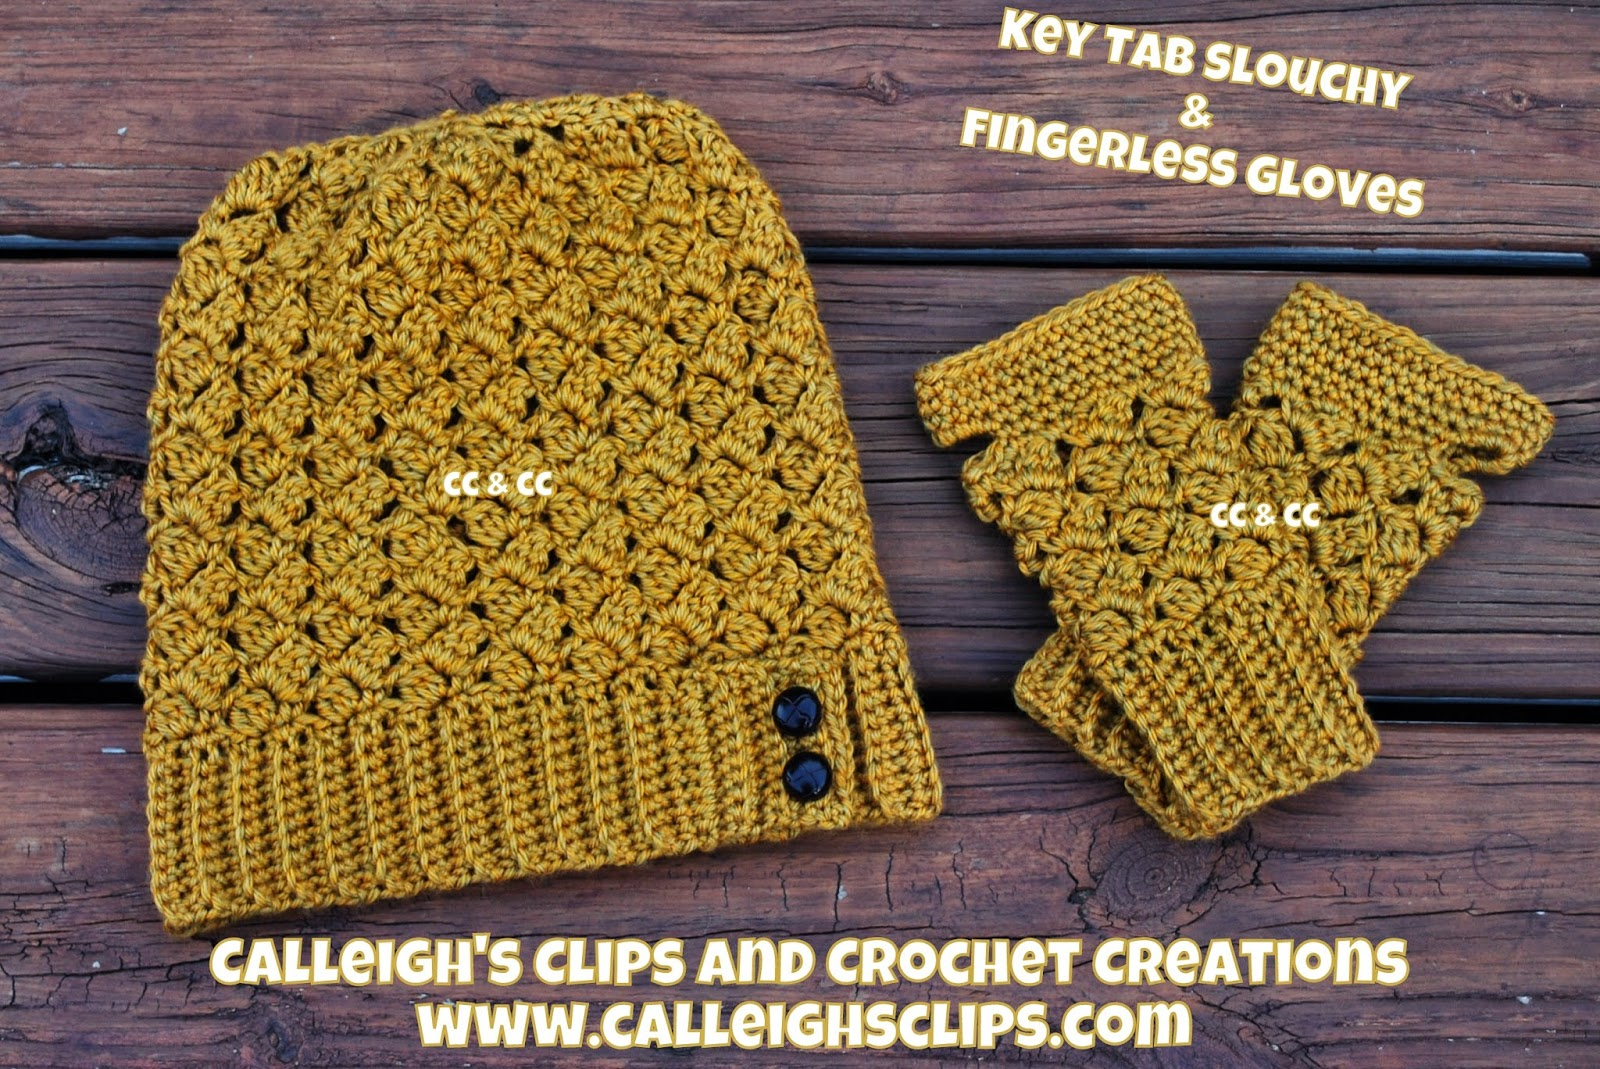 Calleigh\'s Clips & Crochet Creations: Free Crochet Pattern - Key Tab ...